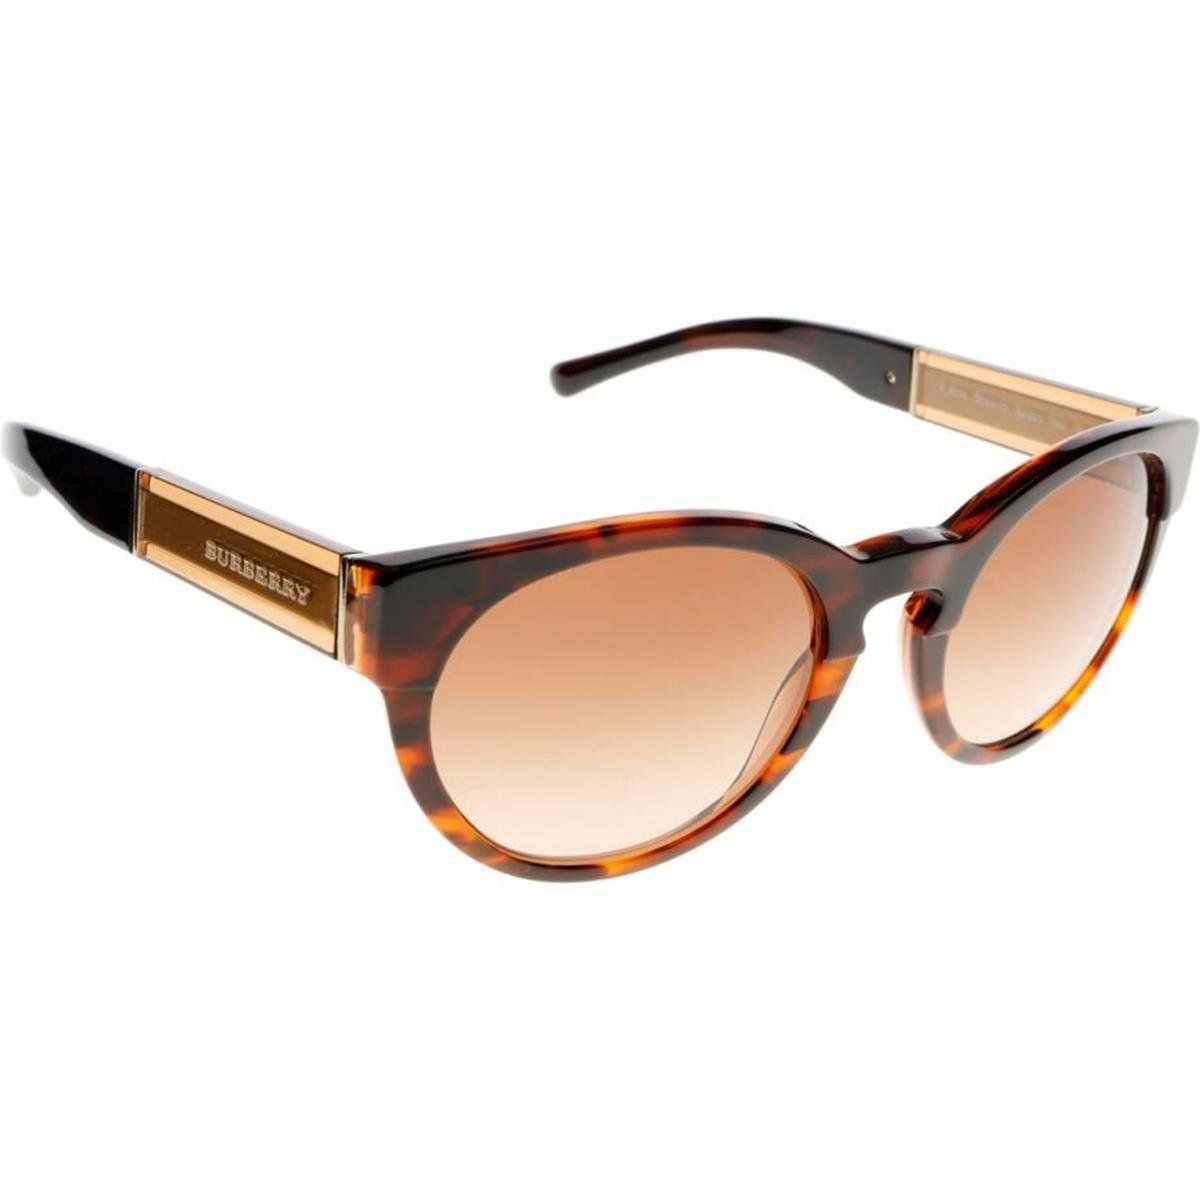 Burberry BE4205 Sunglasses 355913-54 - Top Dk Havana/light Havana Frame, Brown Gradient. Authentic Frames.